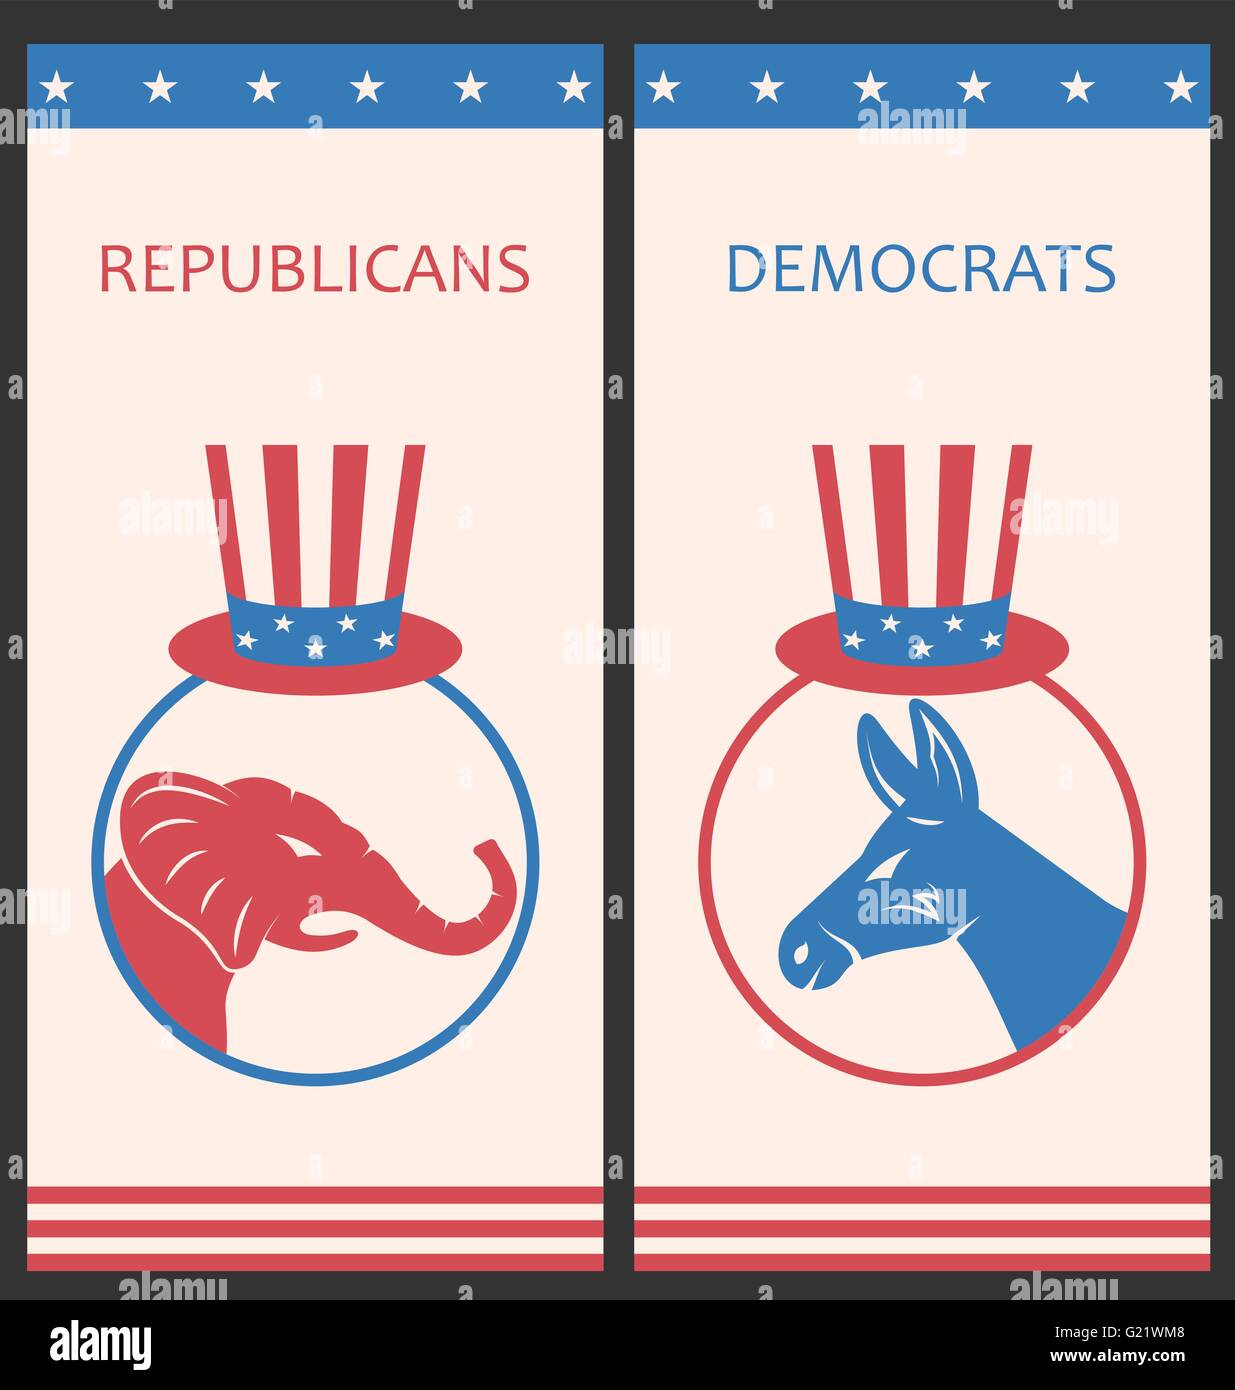 Brochures for Advertise of United States Political Parties - Stock Image